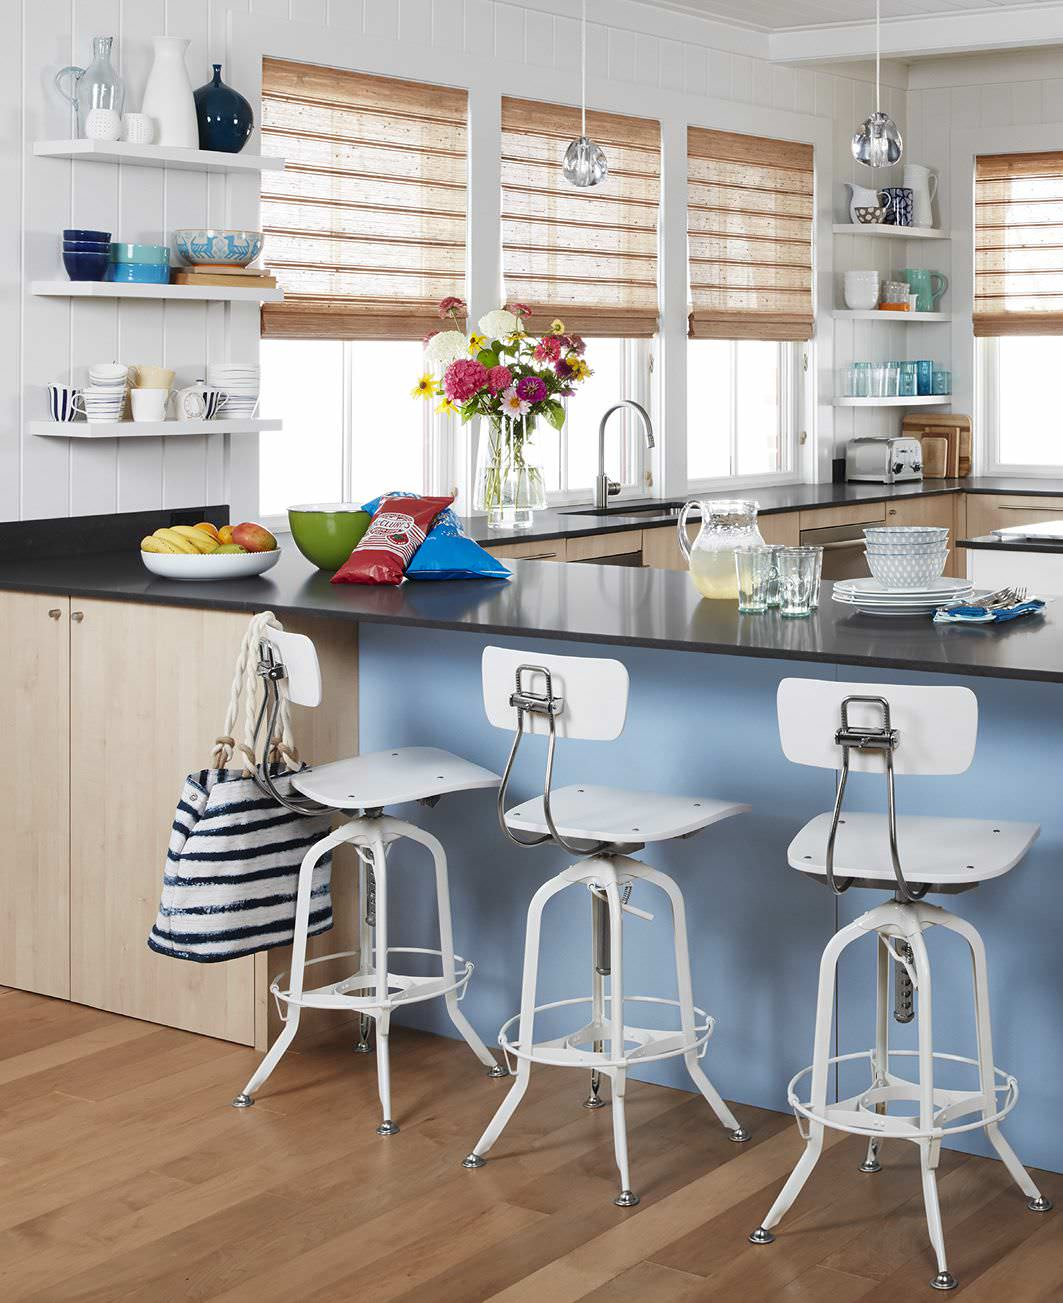 The Not-too-colorful - Colorful Kitchen